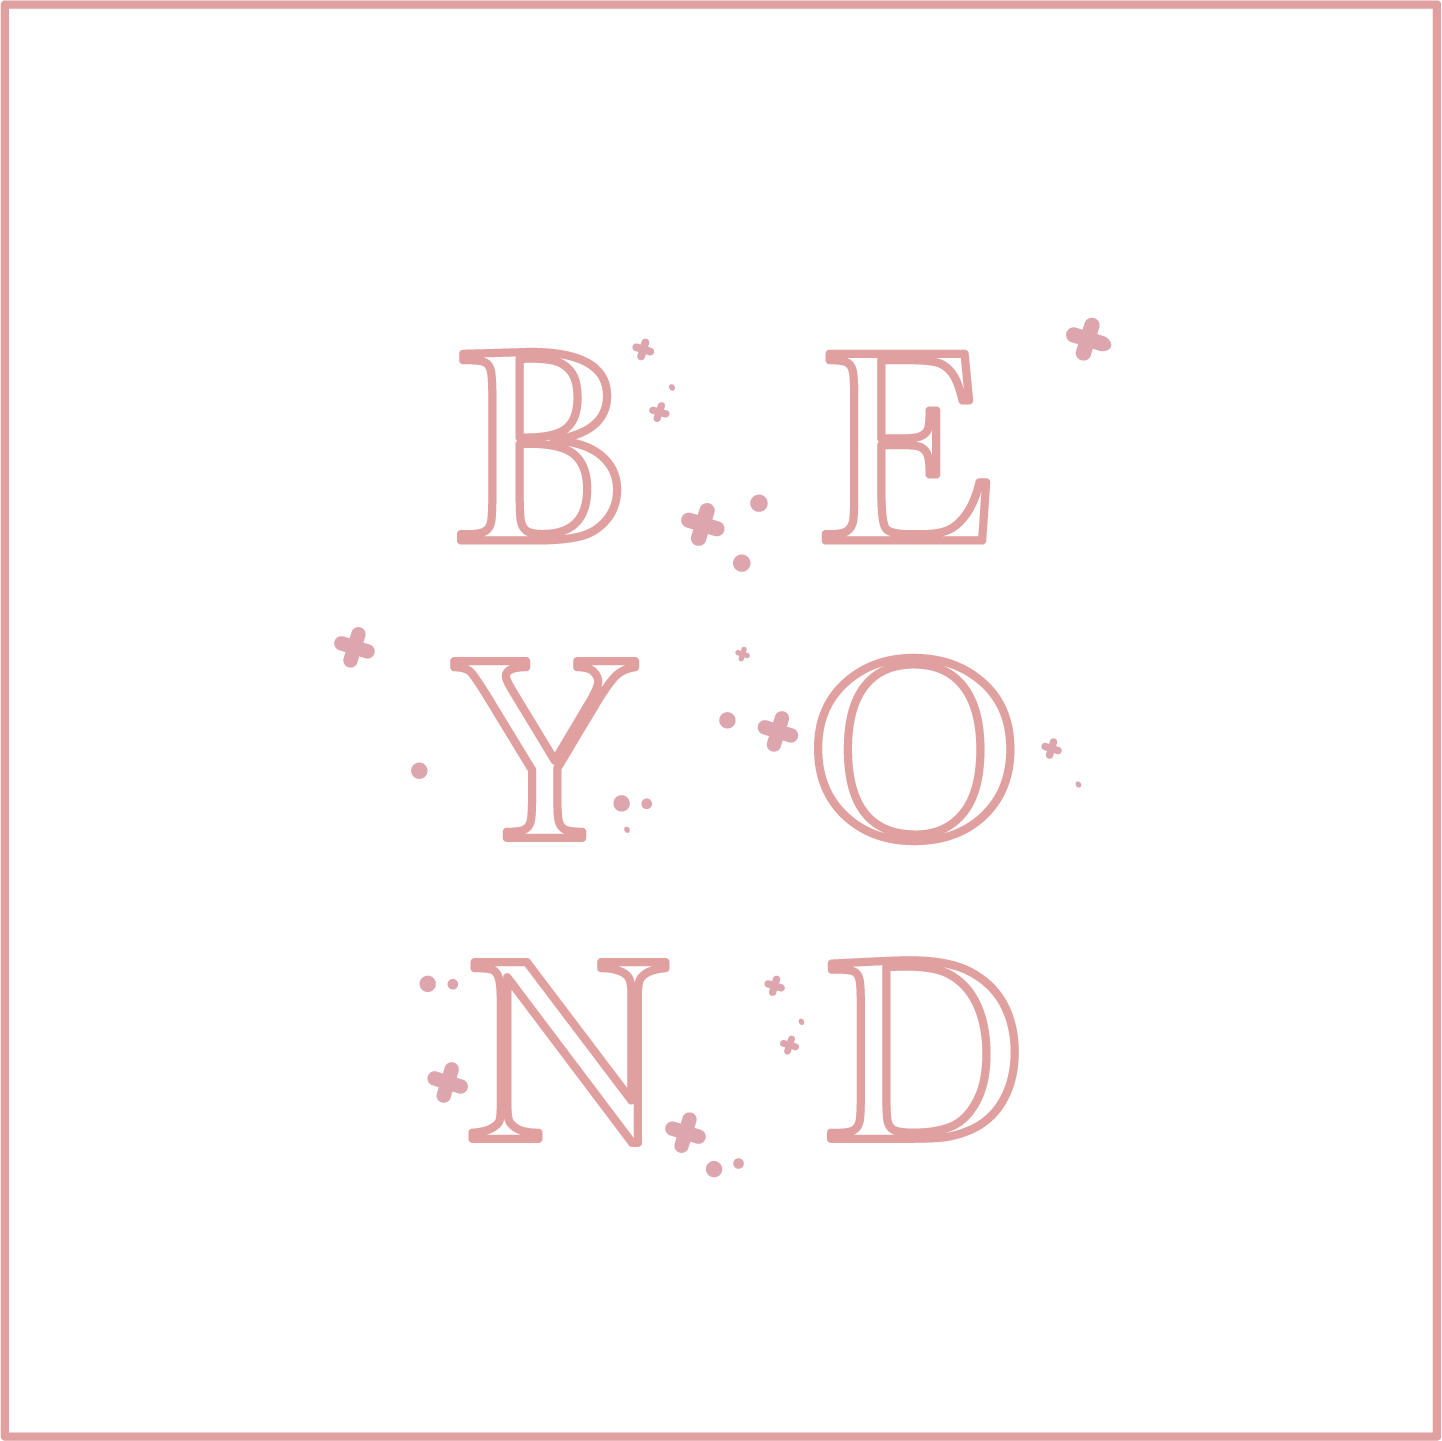 BEYOND WORKSHOP